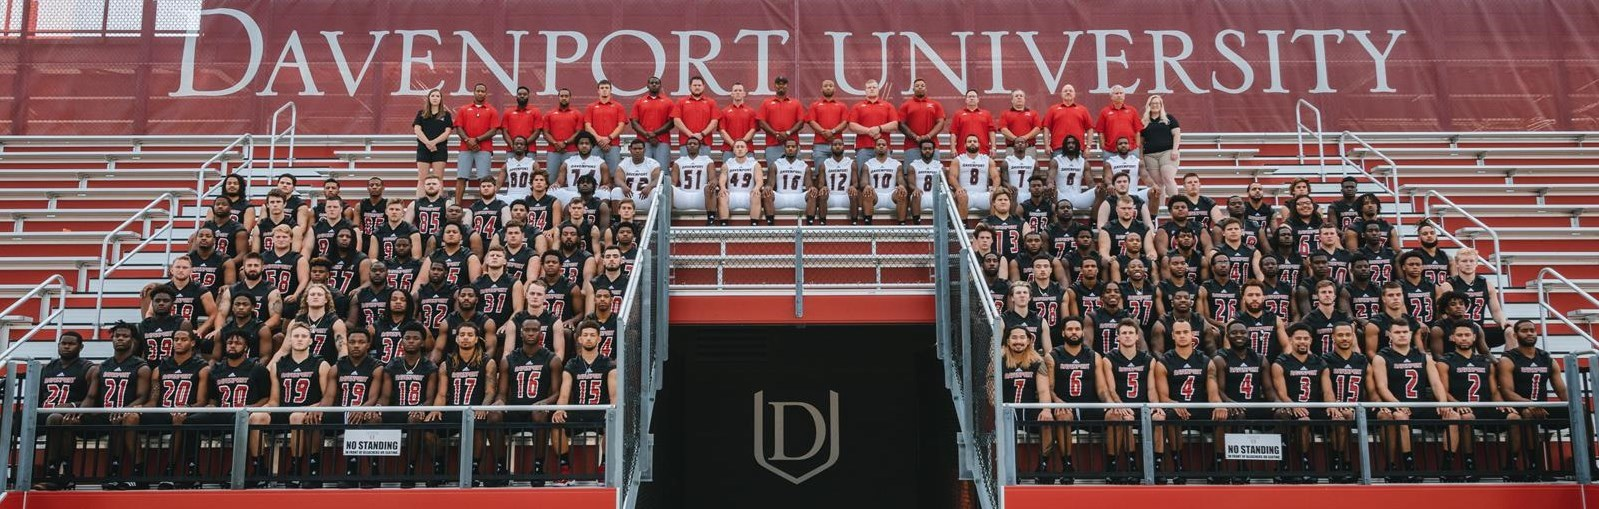 2018 Football Roster Davenport University Athletics